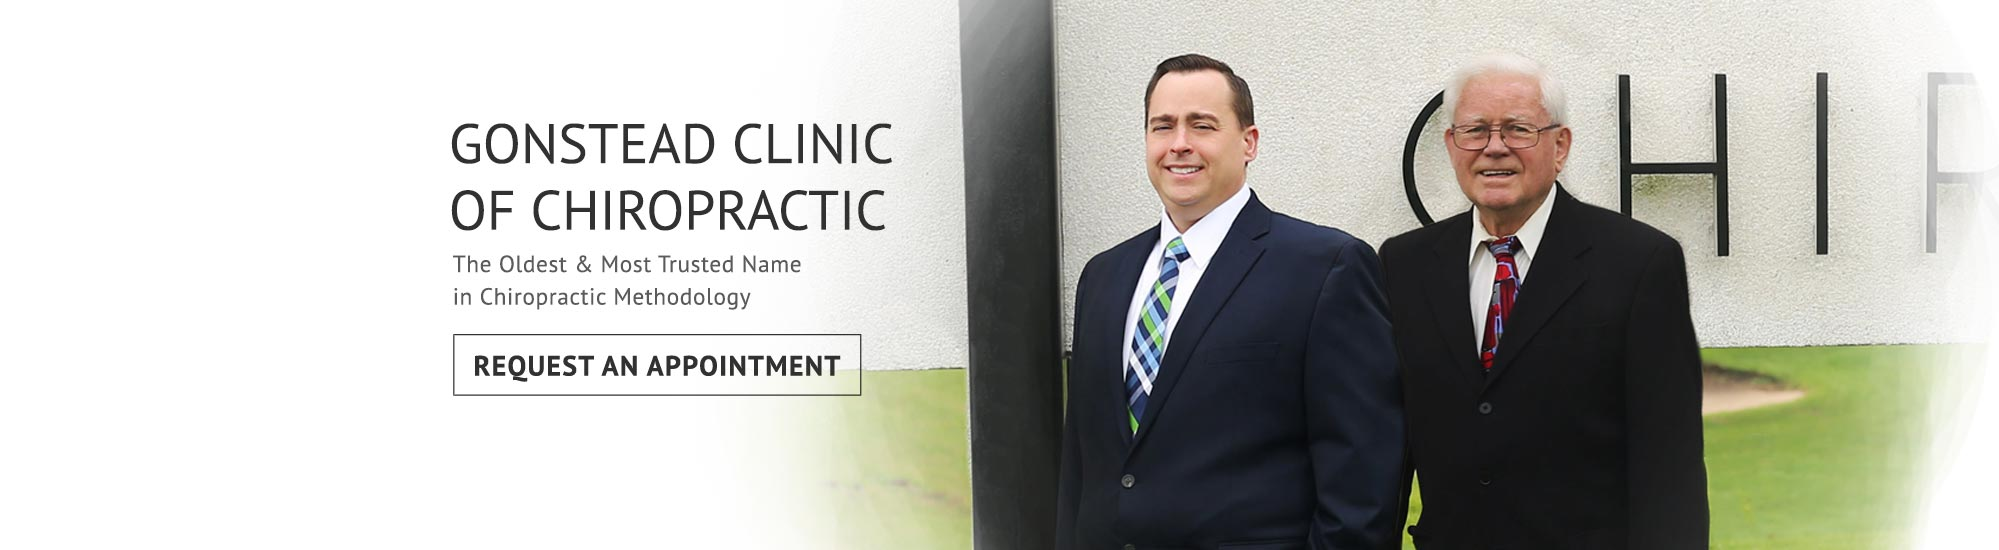 Chiropractic Mt Horeb WI Gonstead Clinic